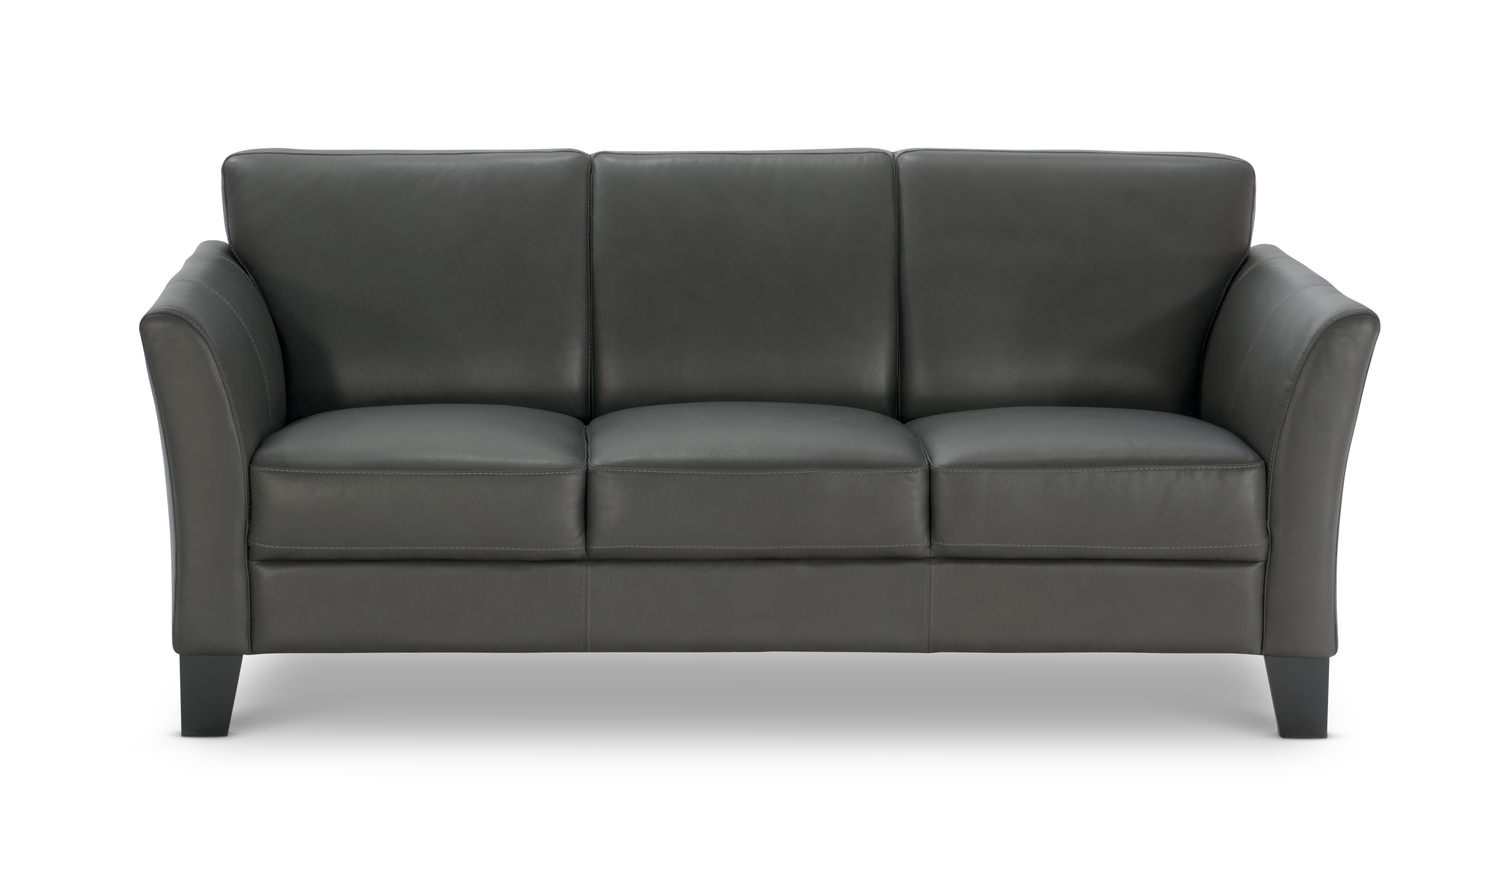 Benji Leather Sofa By Thomas Cole Designs Hom Furniture